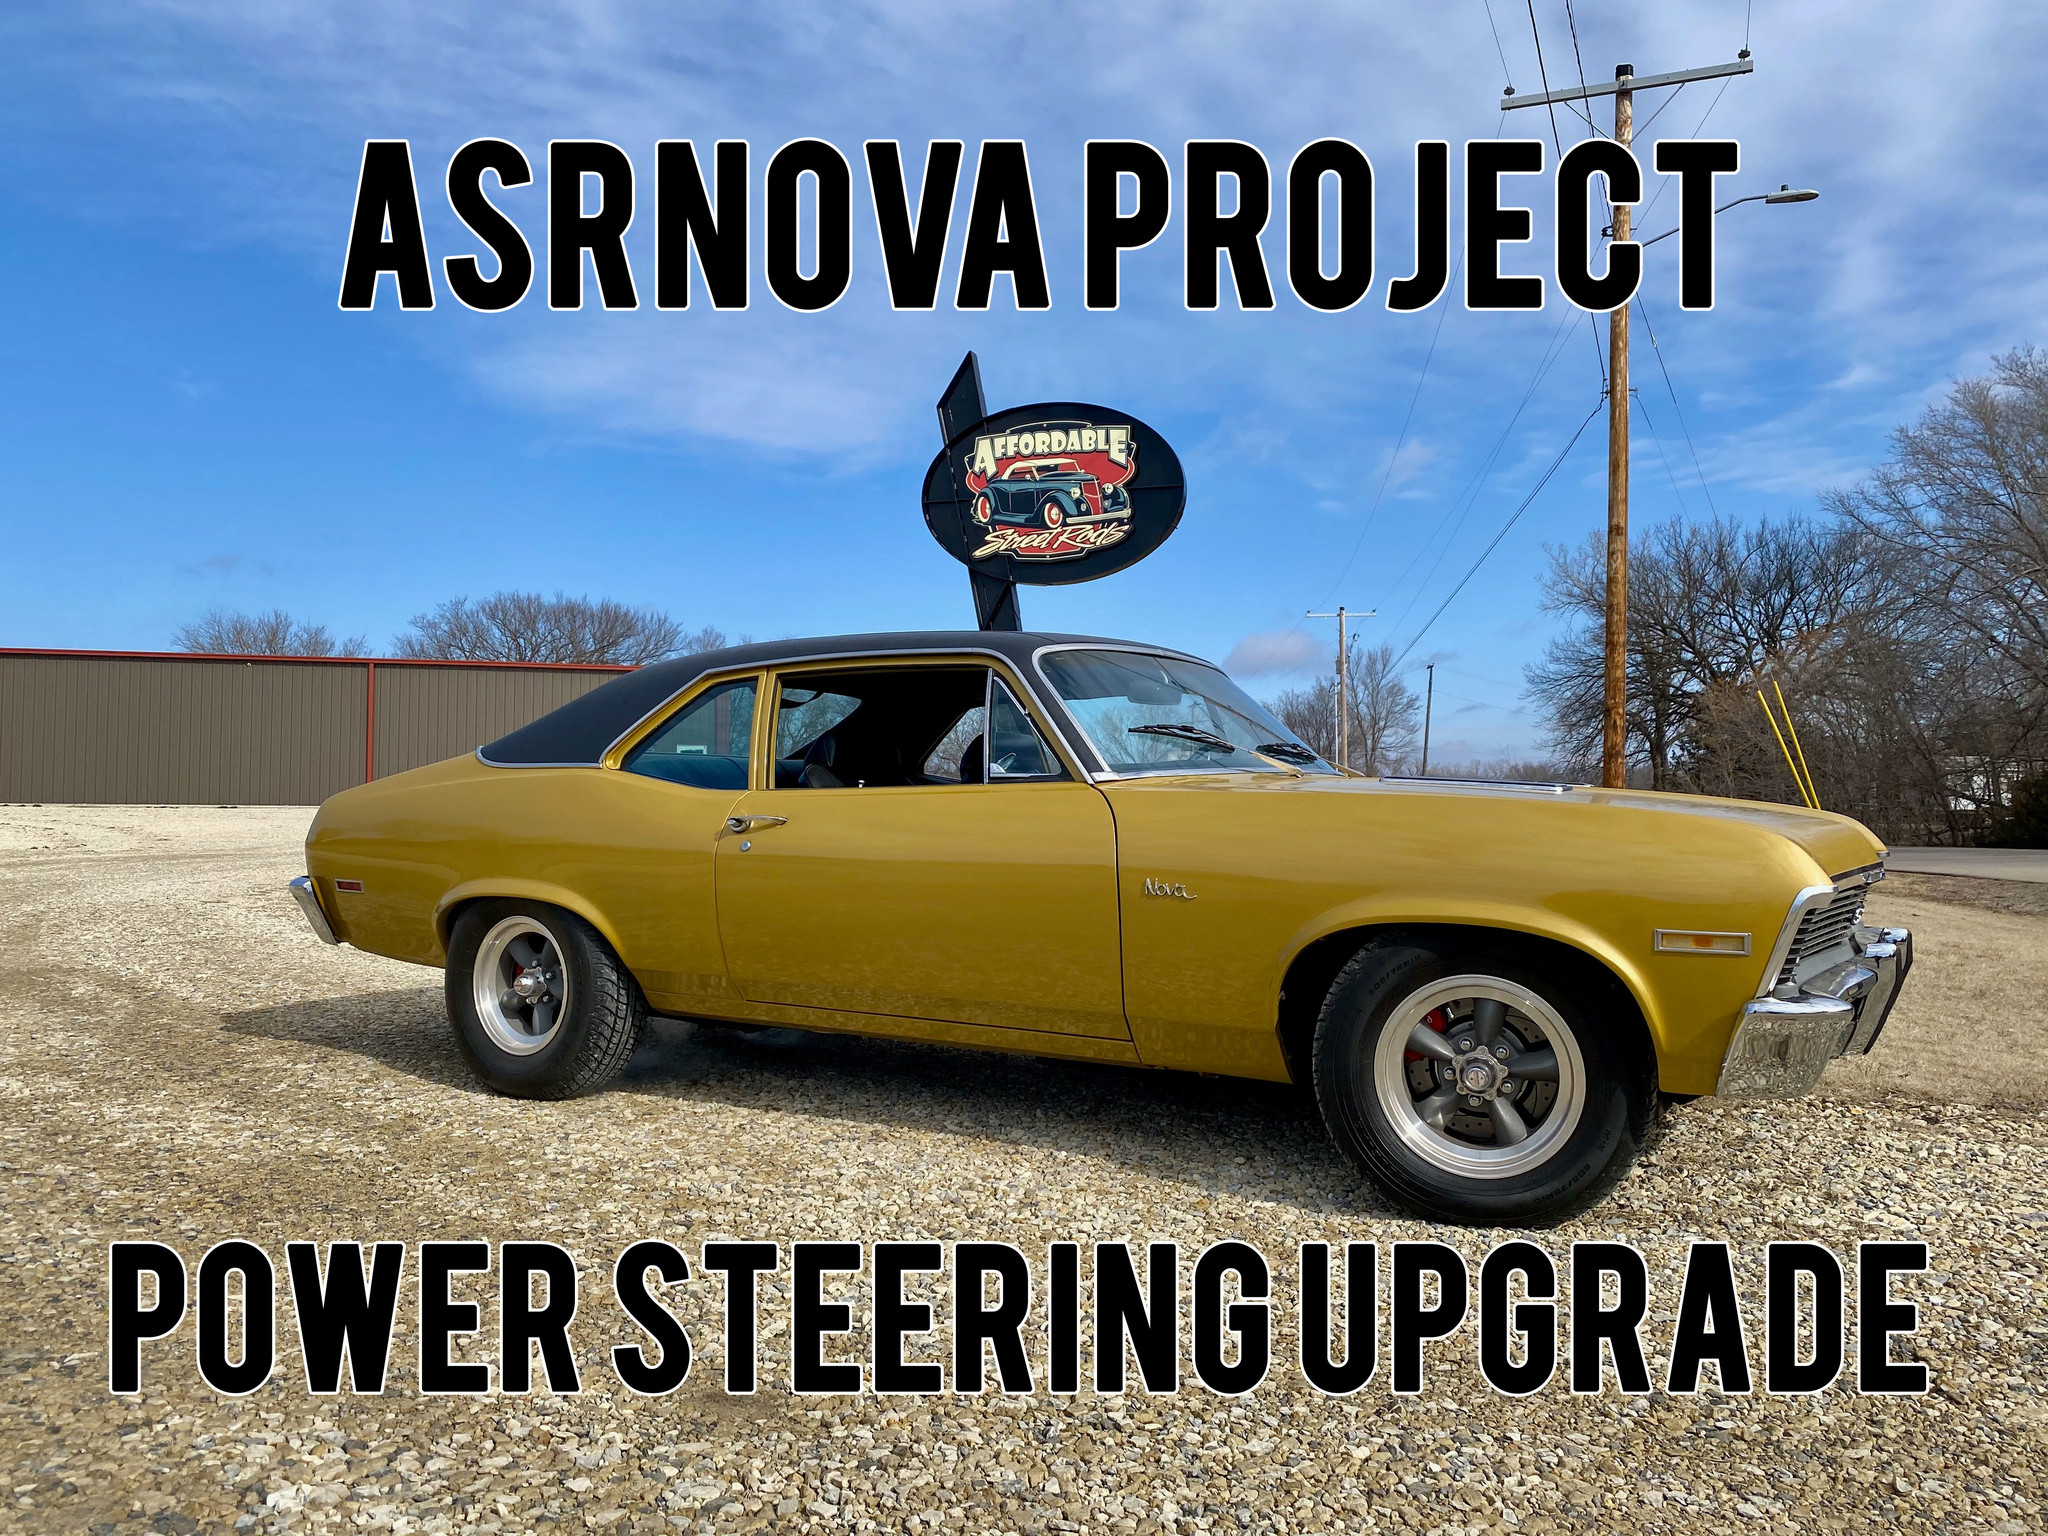 Upgrading the 1792 Chevrolet Nova with a Borgeson Power Steering Box